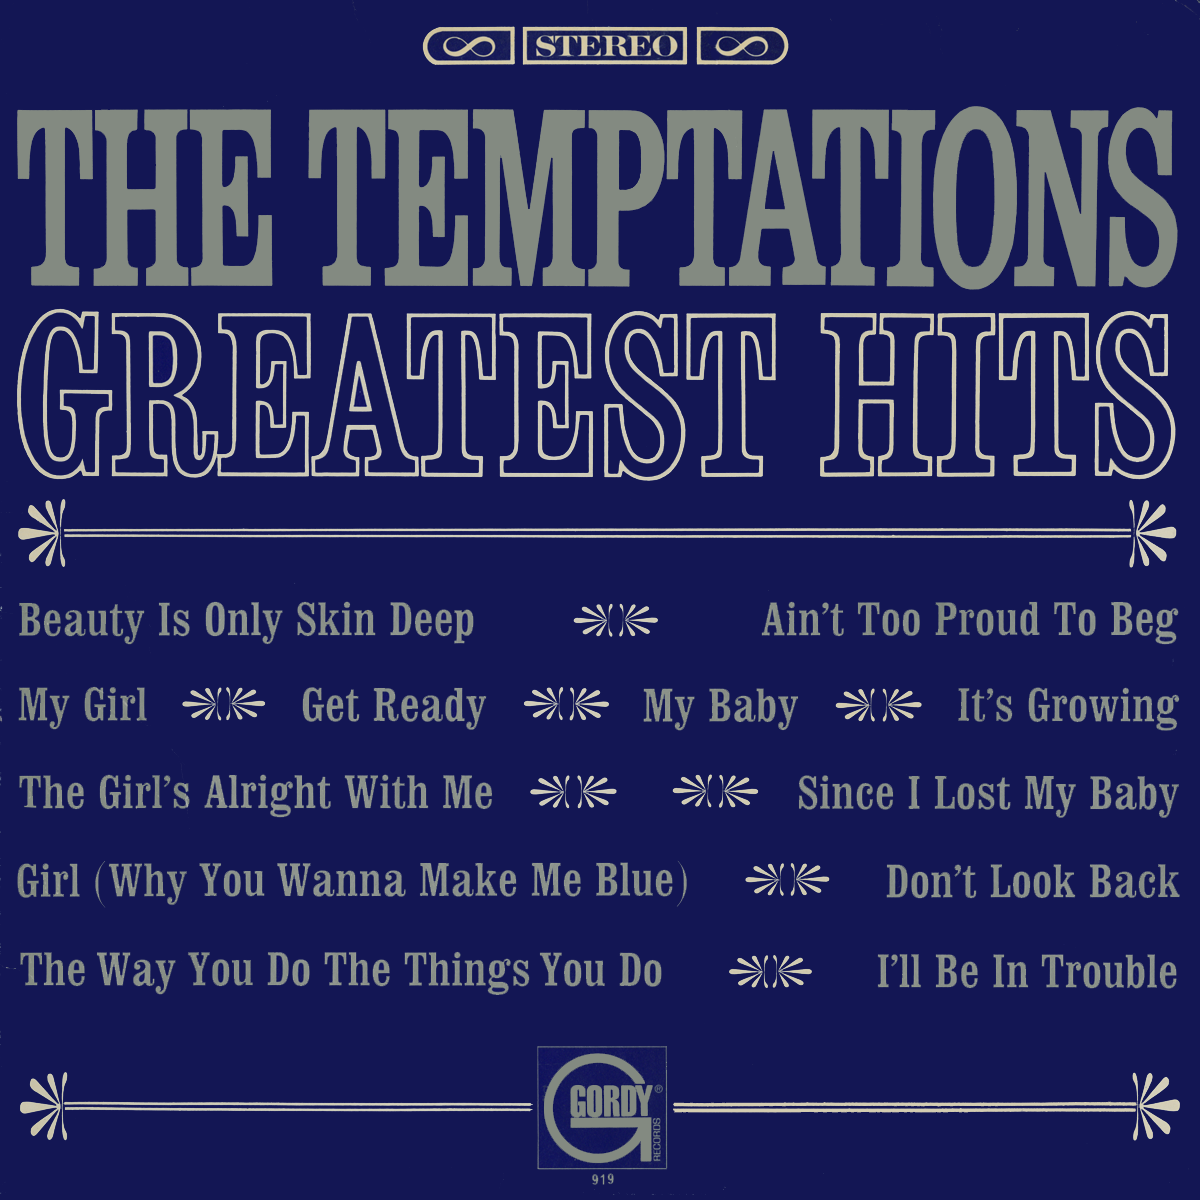 The Temptations Greatest Hits Vinyl Album Covers Com